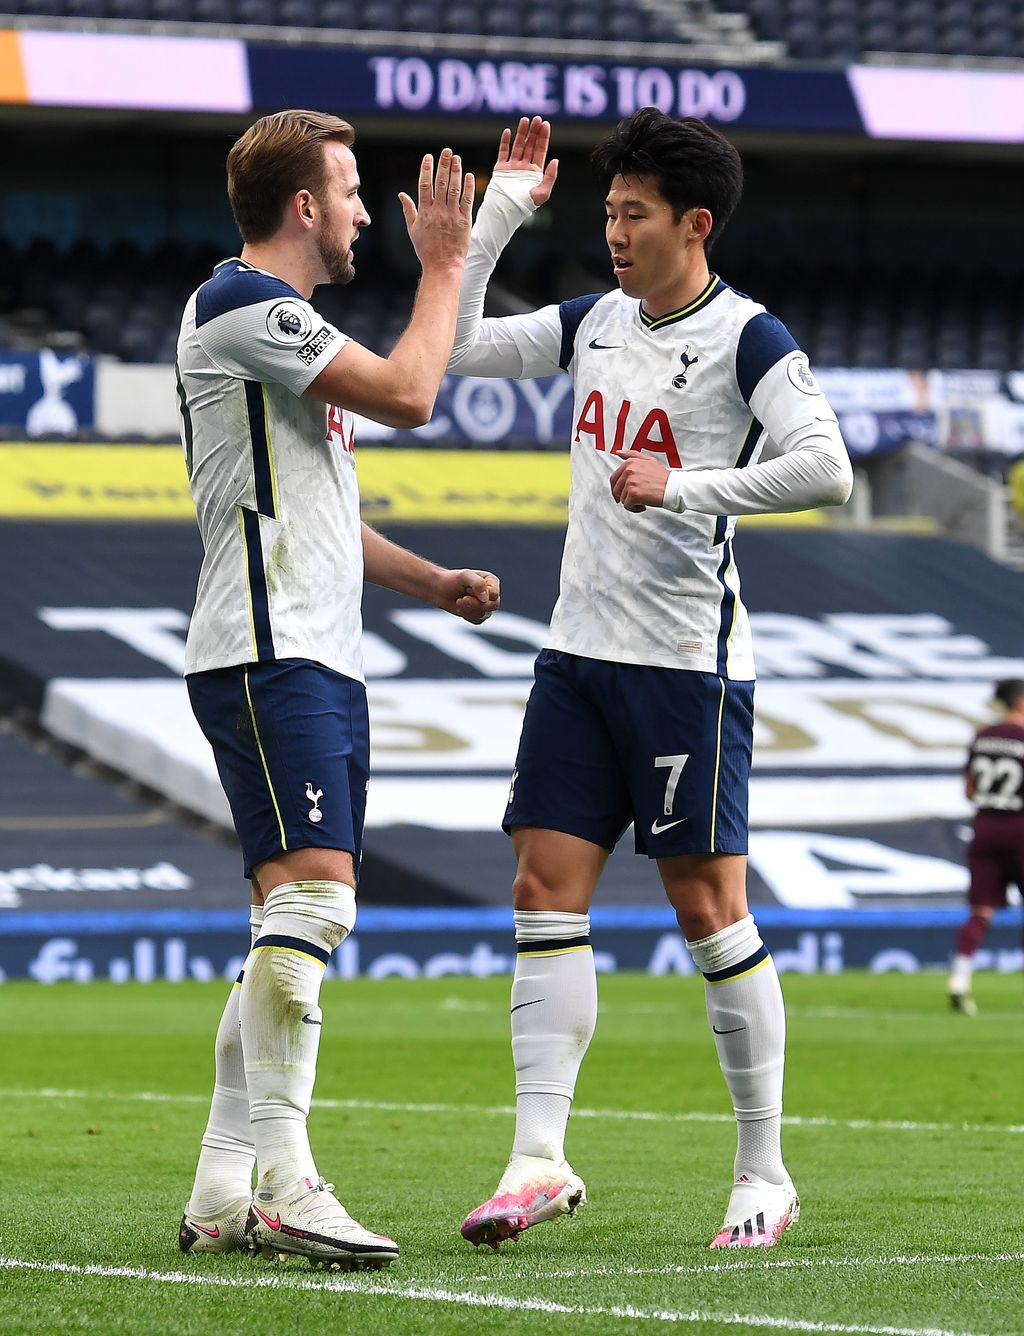 LONDON, ENGLAND - JANUARY 02: Harry Kane of Tottenham Hotspur celebrates with teammate Son Heung-Min of Tottenham Hotspur after scoring their team's first goal from the penalty spot during the Premier League match between Tottenham Hotspur and Leeds United at Tottenham Hotspur Stadium on January 02, 2021 in London, England. The match will be played without fans, behind closed doors as a Covid-19 precaution. (Photo by Andy Rain - Pool/Getty Images)